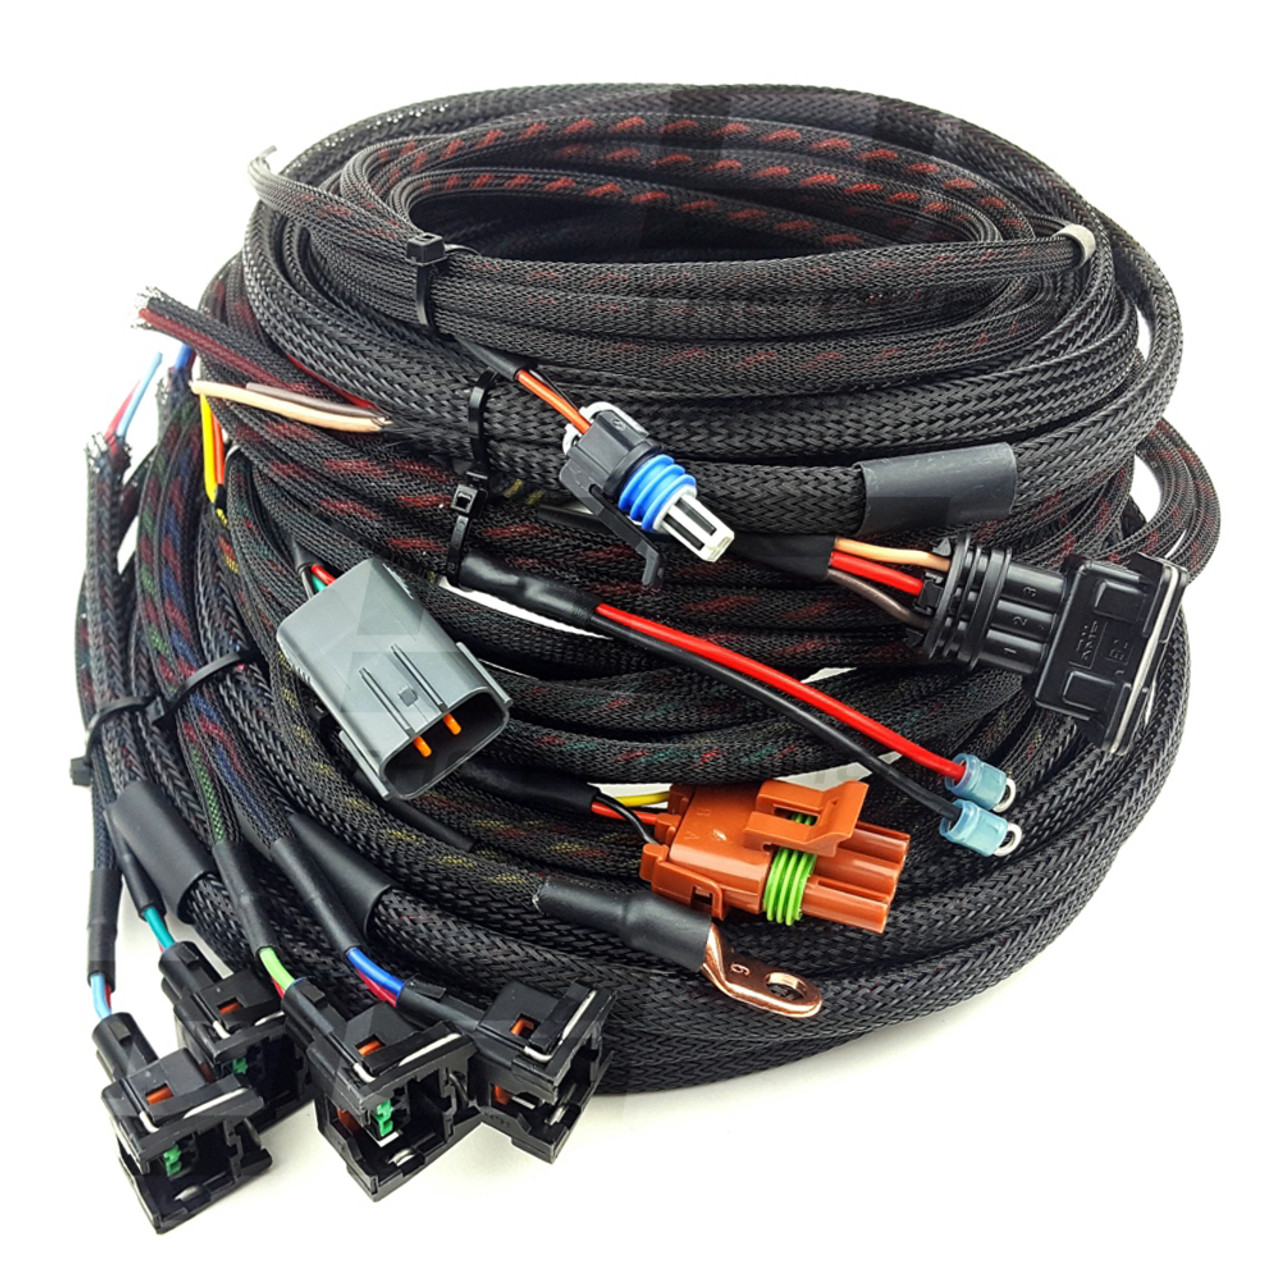 Megasquirt Wiring Harness Air Cooled VW